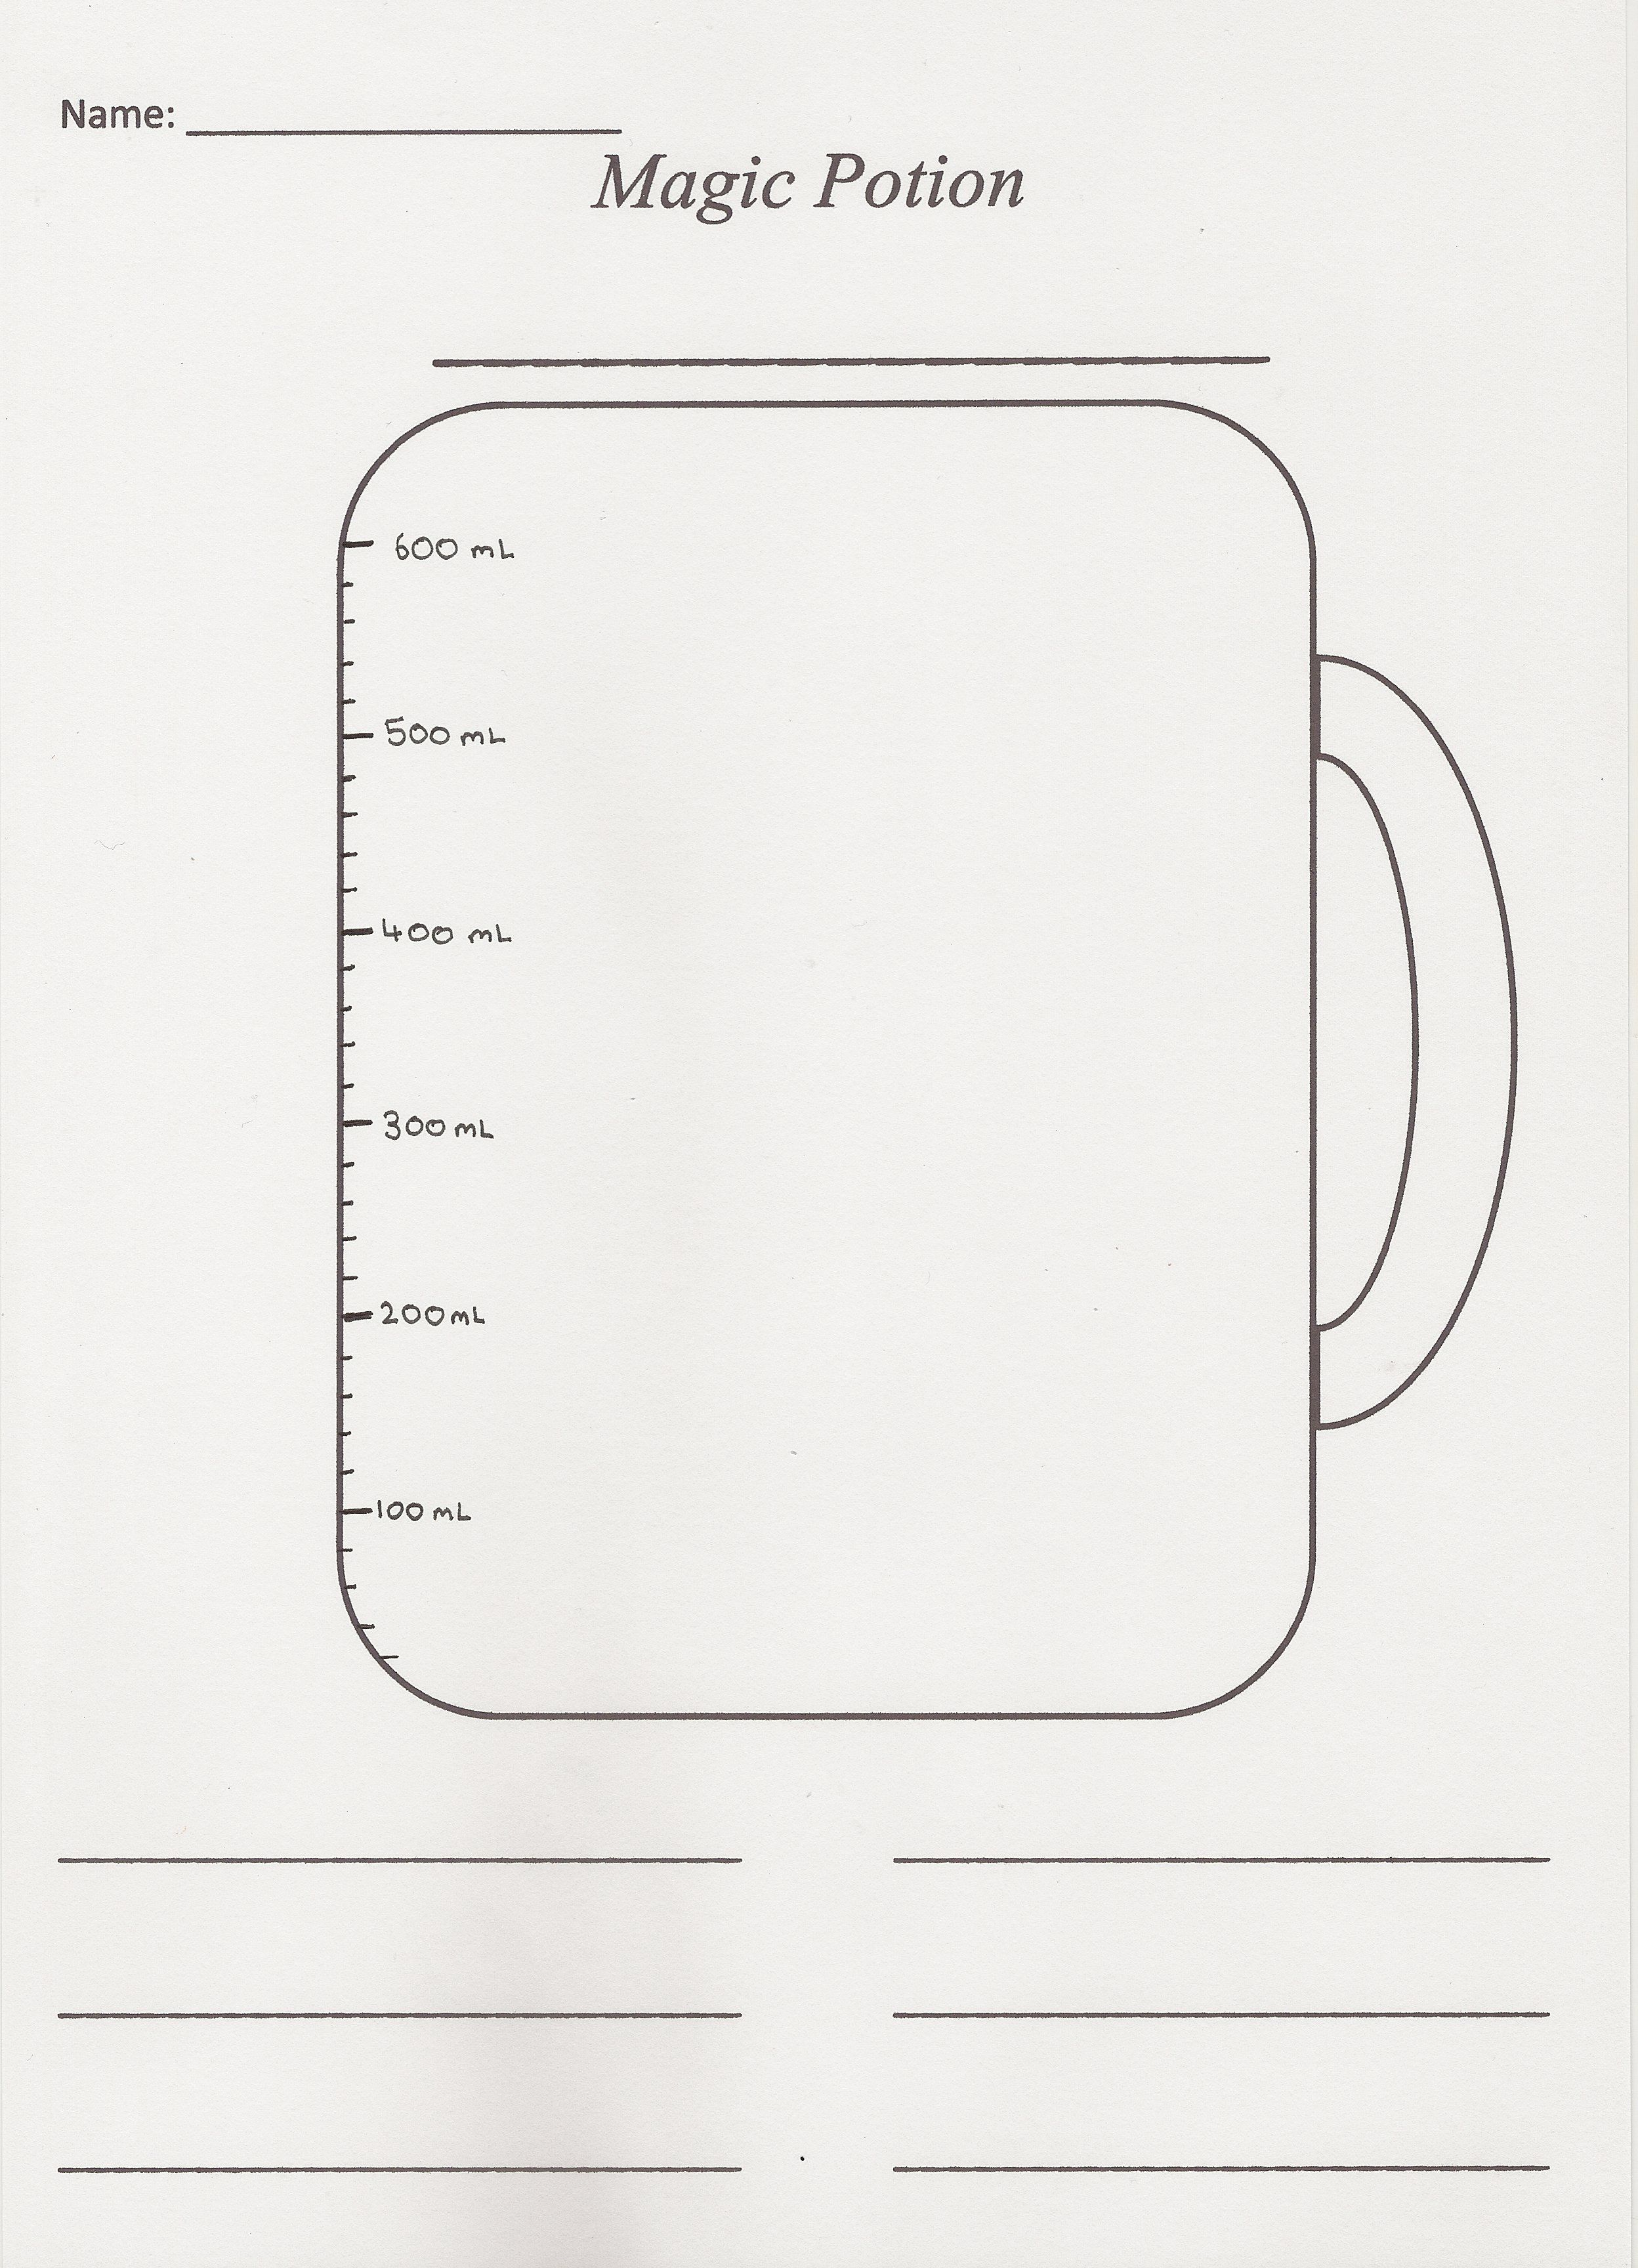 Measuring Jug Activity Sheet 2